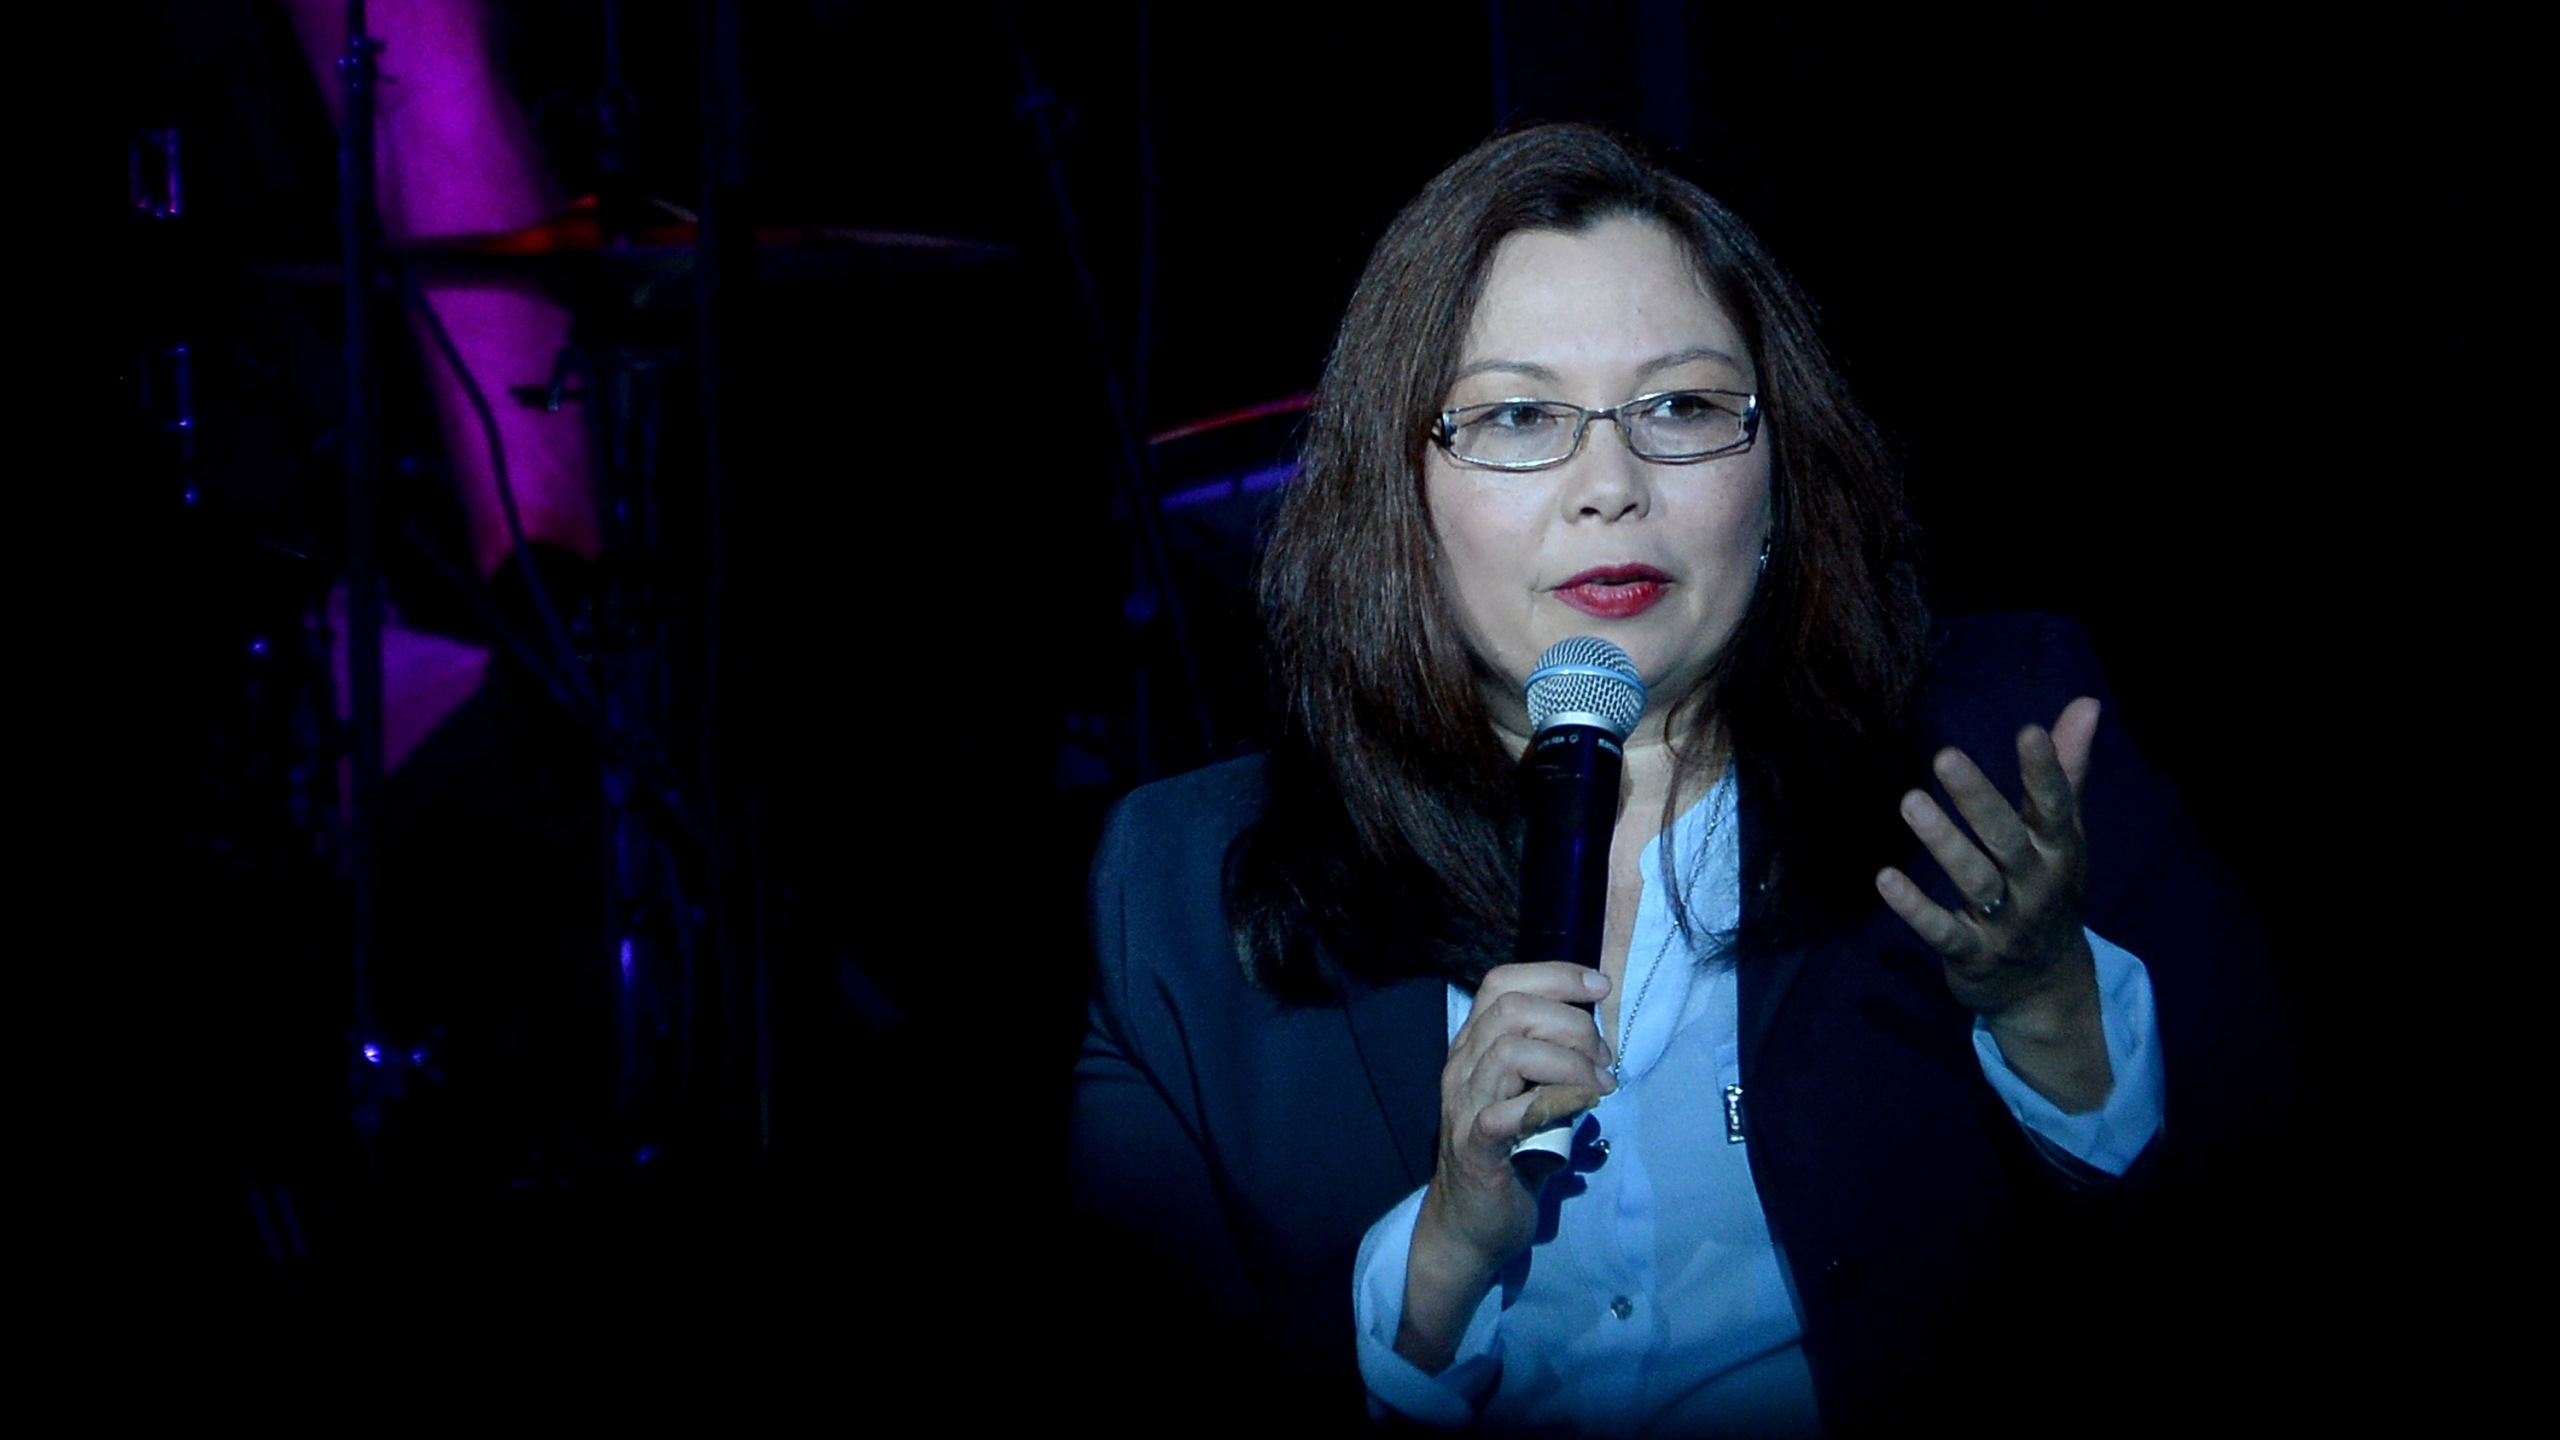 U.S. Senator Tammy Duckworth introduces Joe Walsh at the VetsAid Charity Benefit Concert at Eagle Bank Arena on Sept. 20, 2017 in Fairfax, Virginia. (Credit: Shannon Finney/Getty Images)